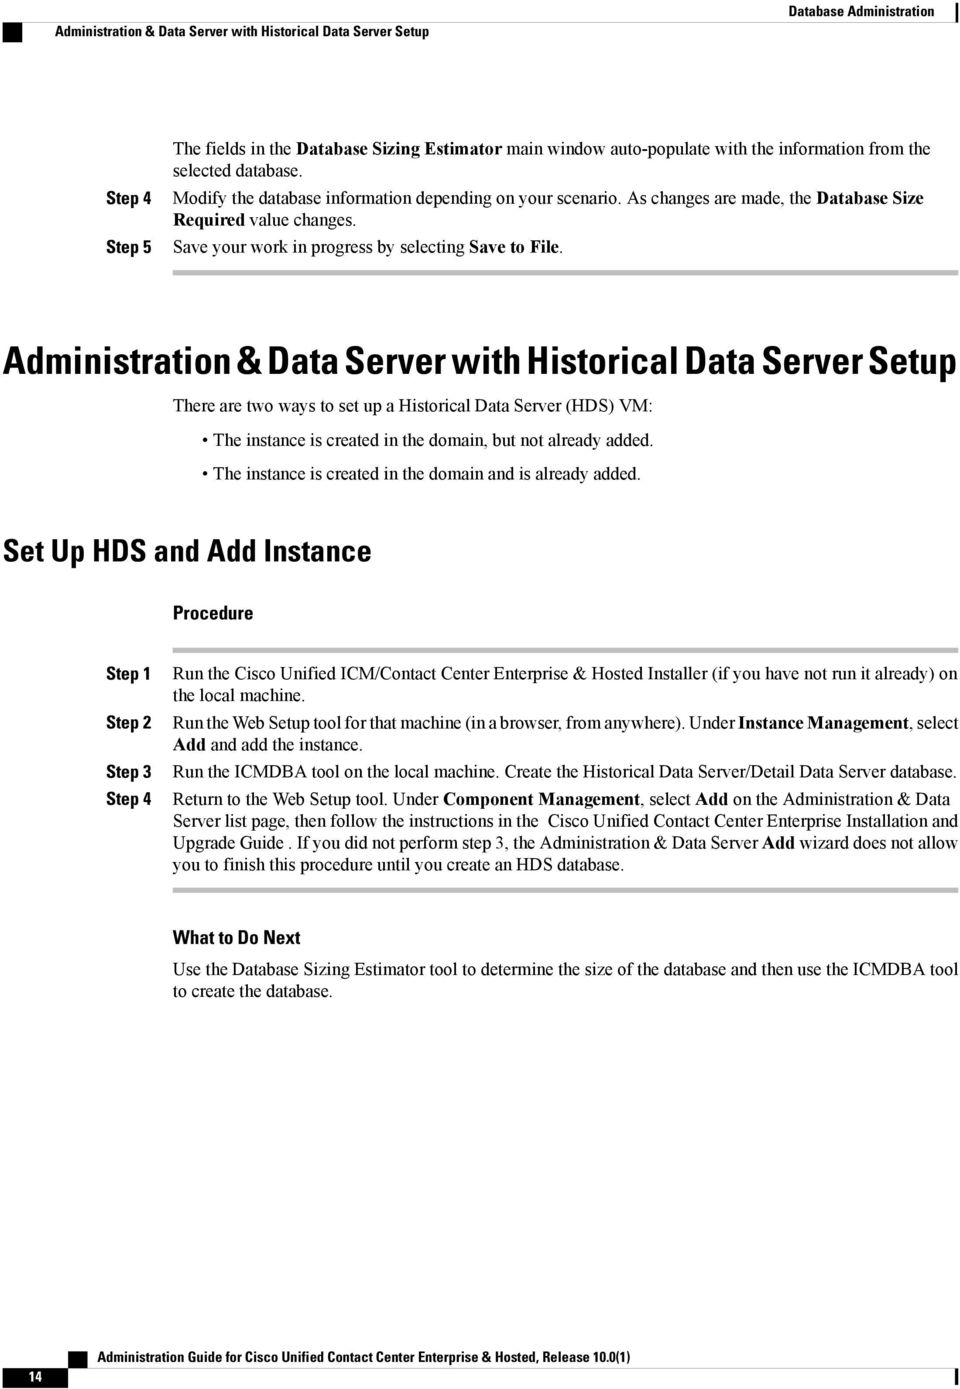 Administration & Data Server with Historical Data Server Setup There are two ways to set up a Historical Data Server (HDS) VM: The instance is created in the domain, but not already added.